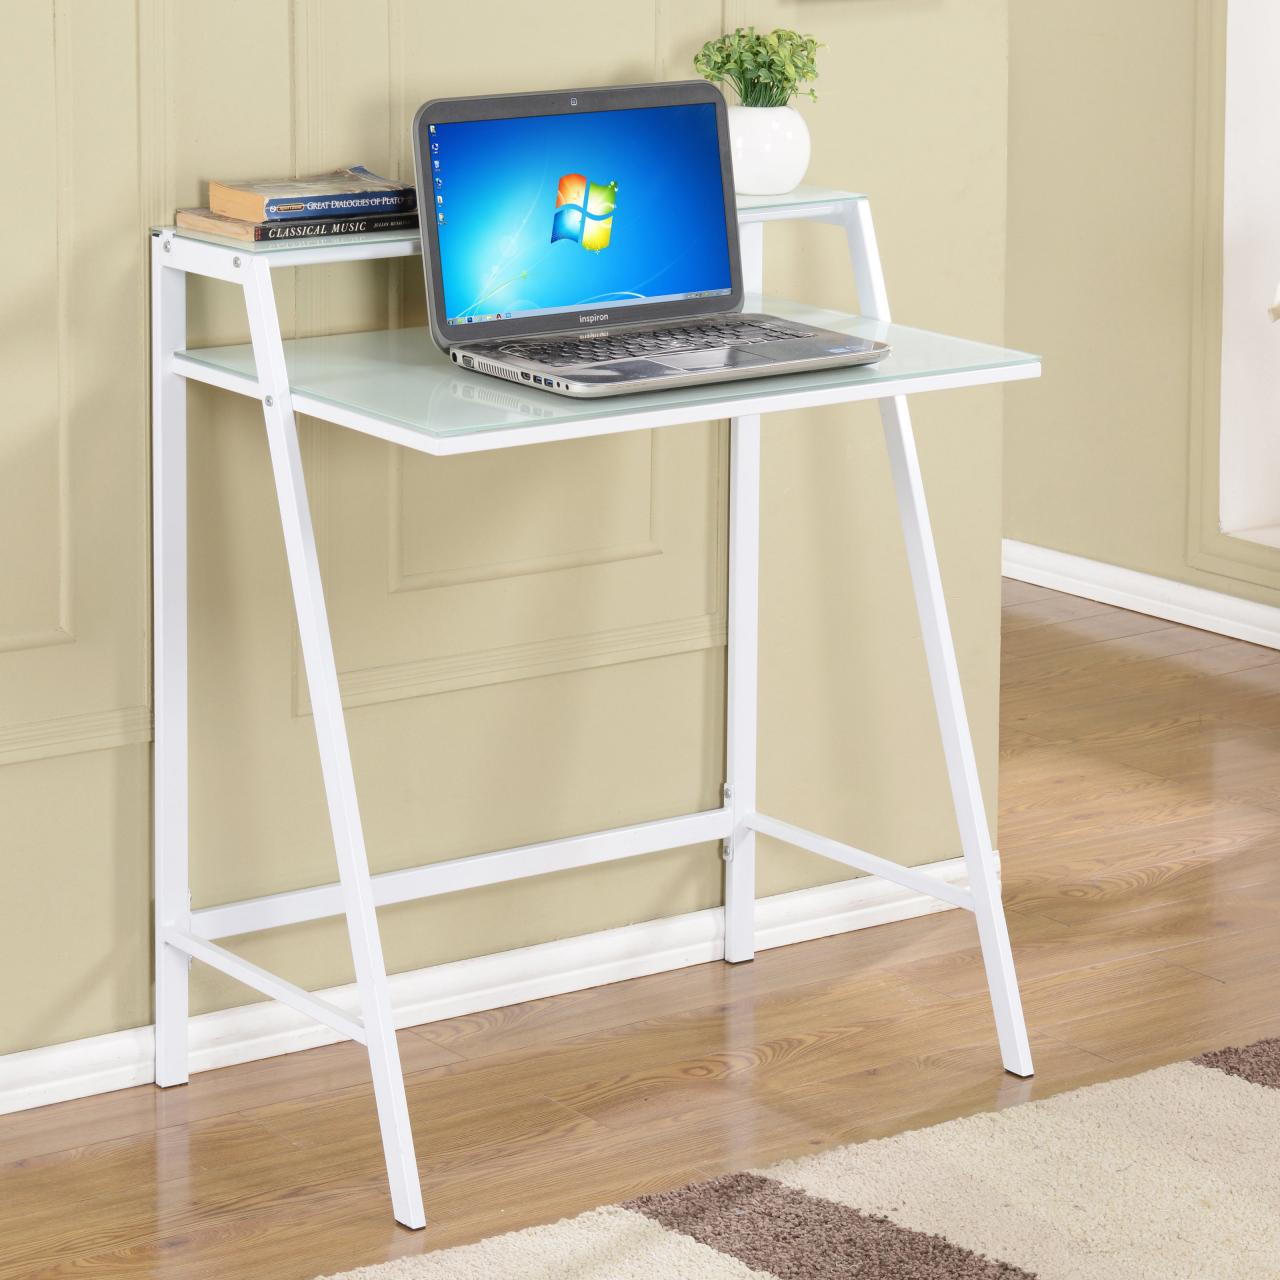 12 Tiny Desks For Tiny Home Offices Hgtv S Decorating